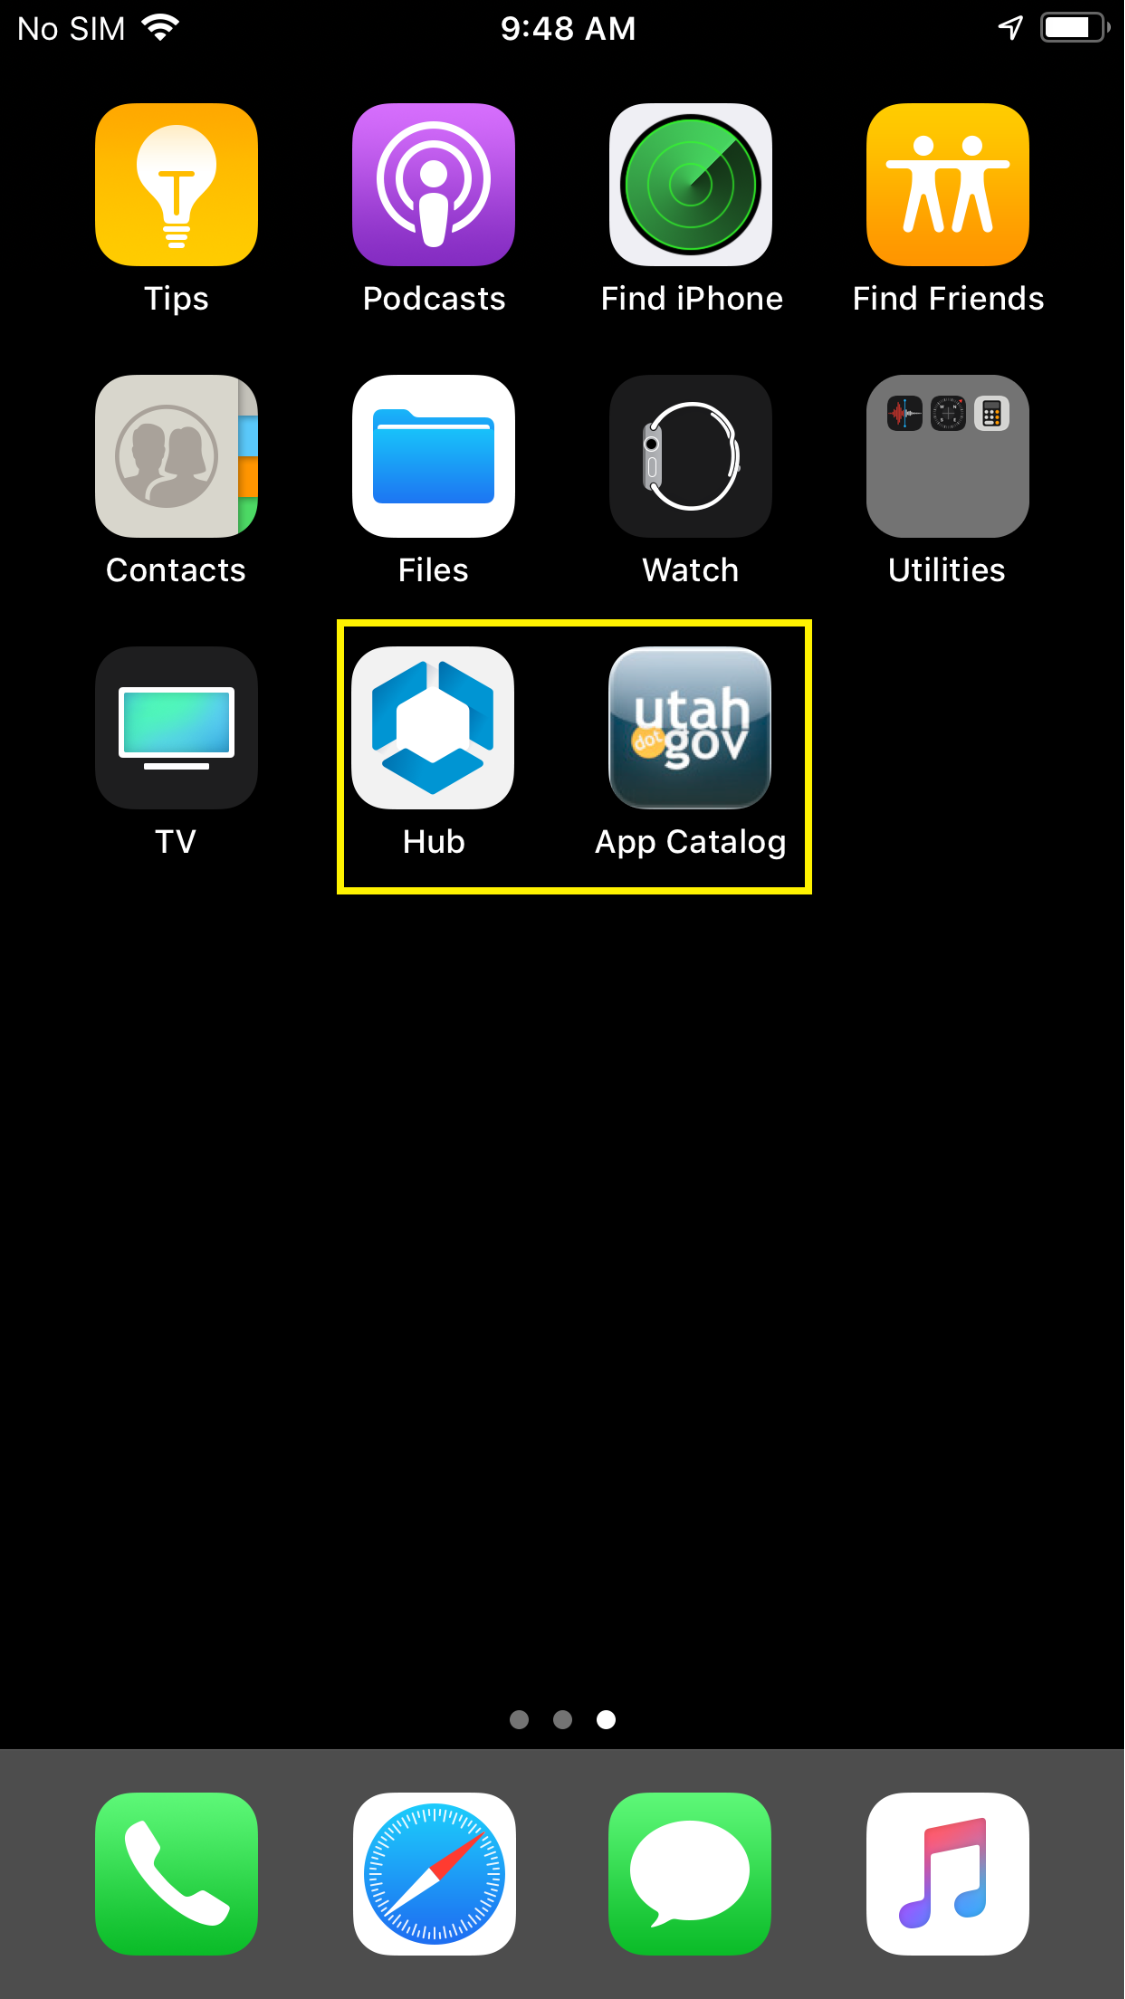 agent and app catalog app icons